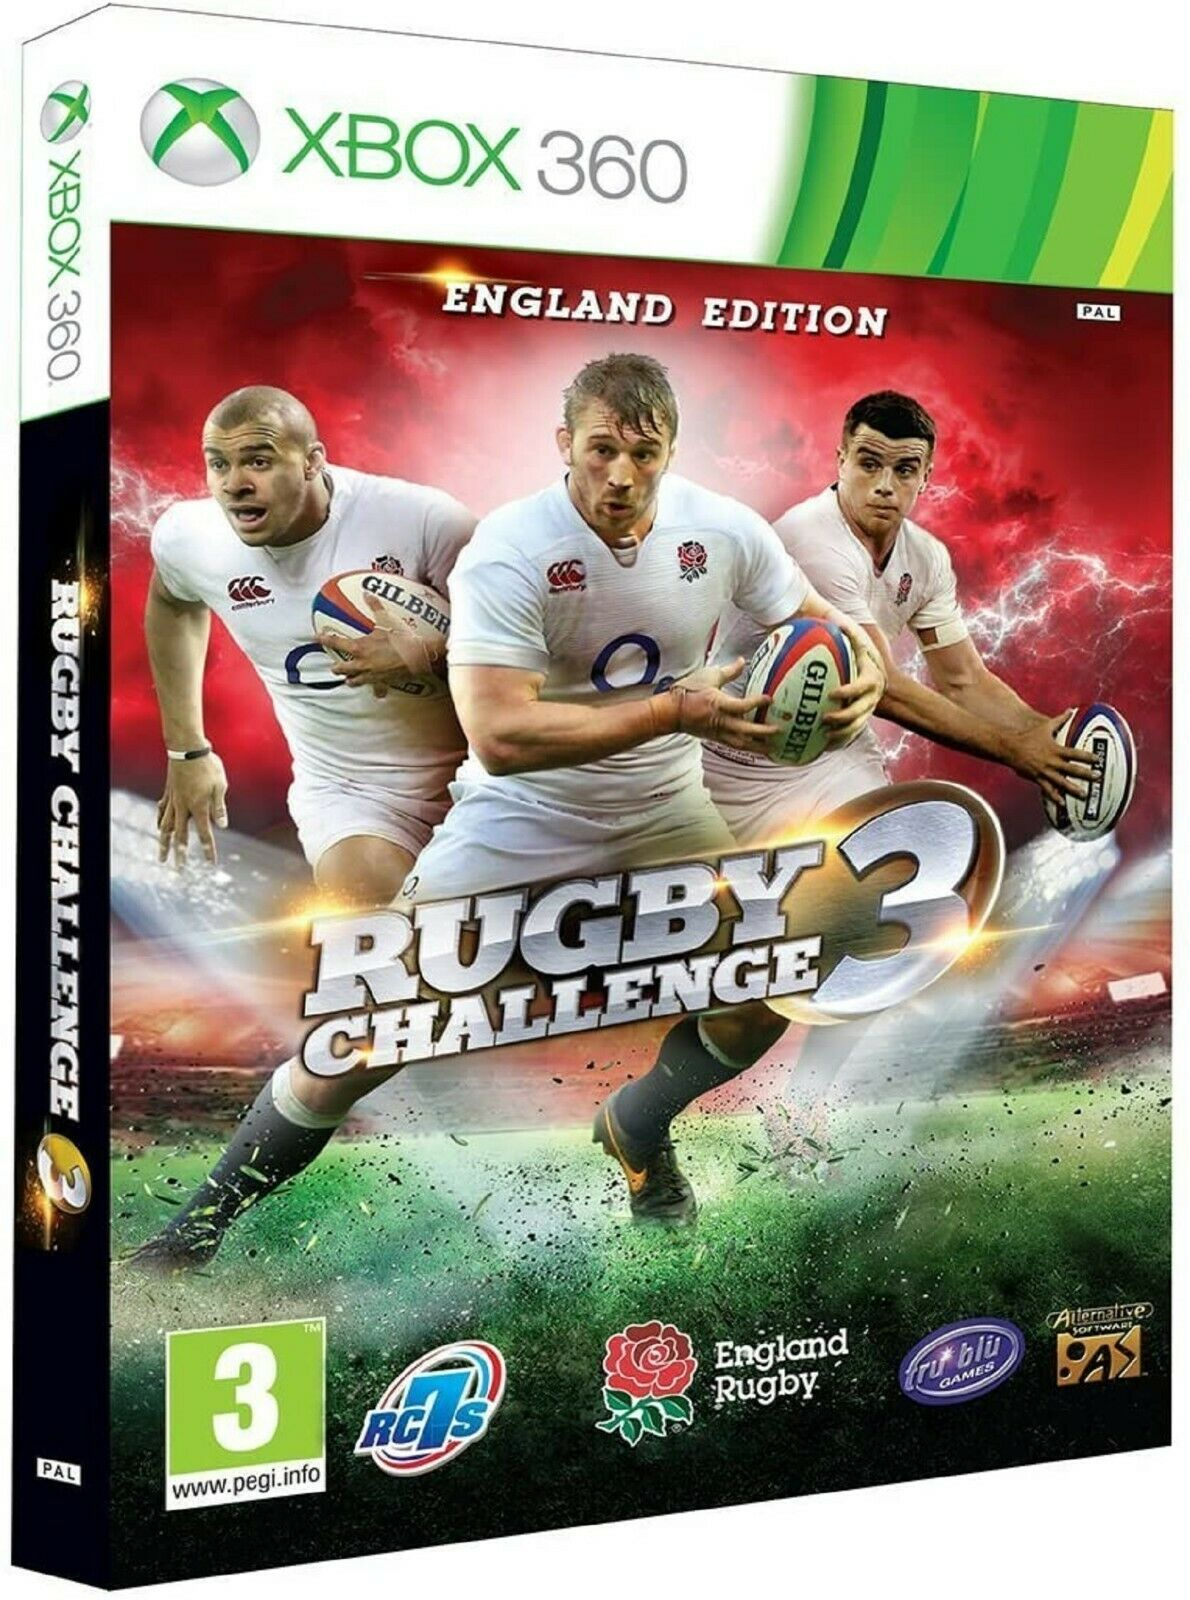 Rugby Challenge 3 Xbox 360 Ms Xbox360 Sports Video Game Uk Release For Sale Online Ebay